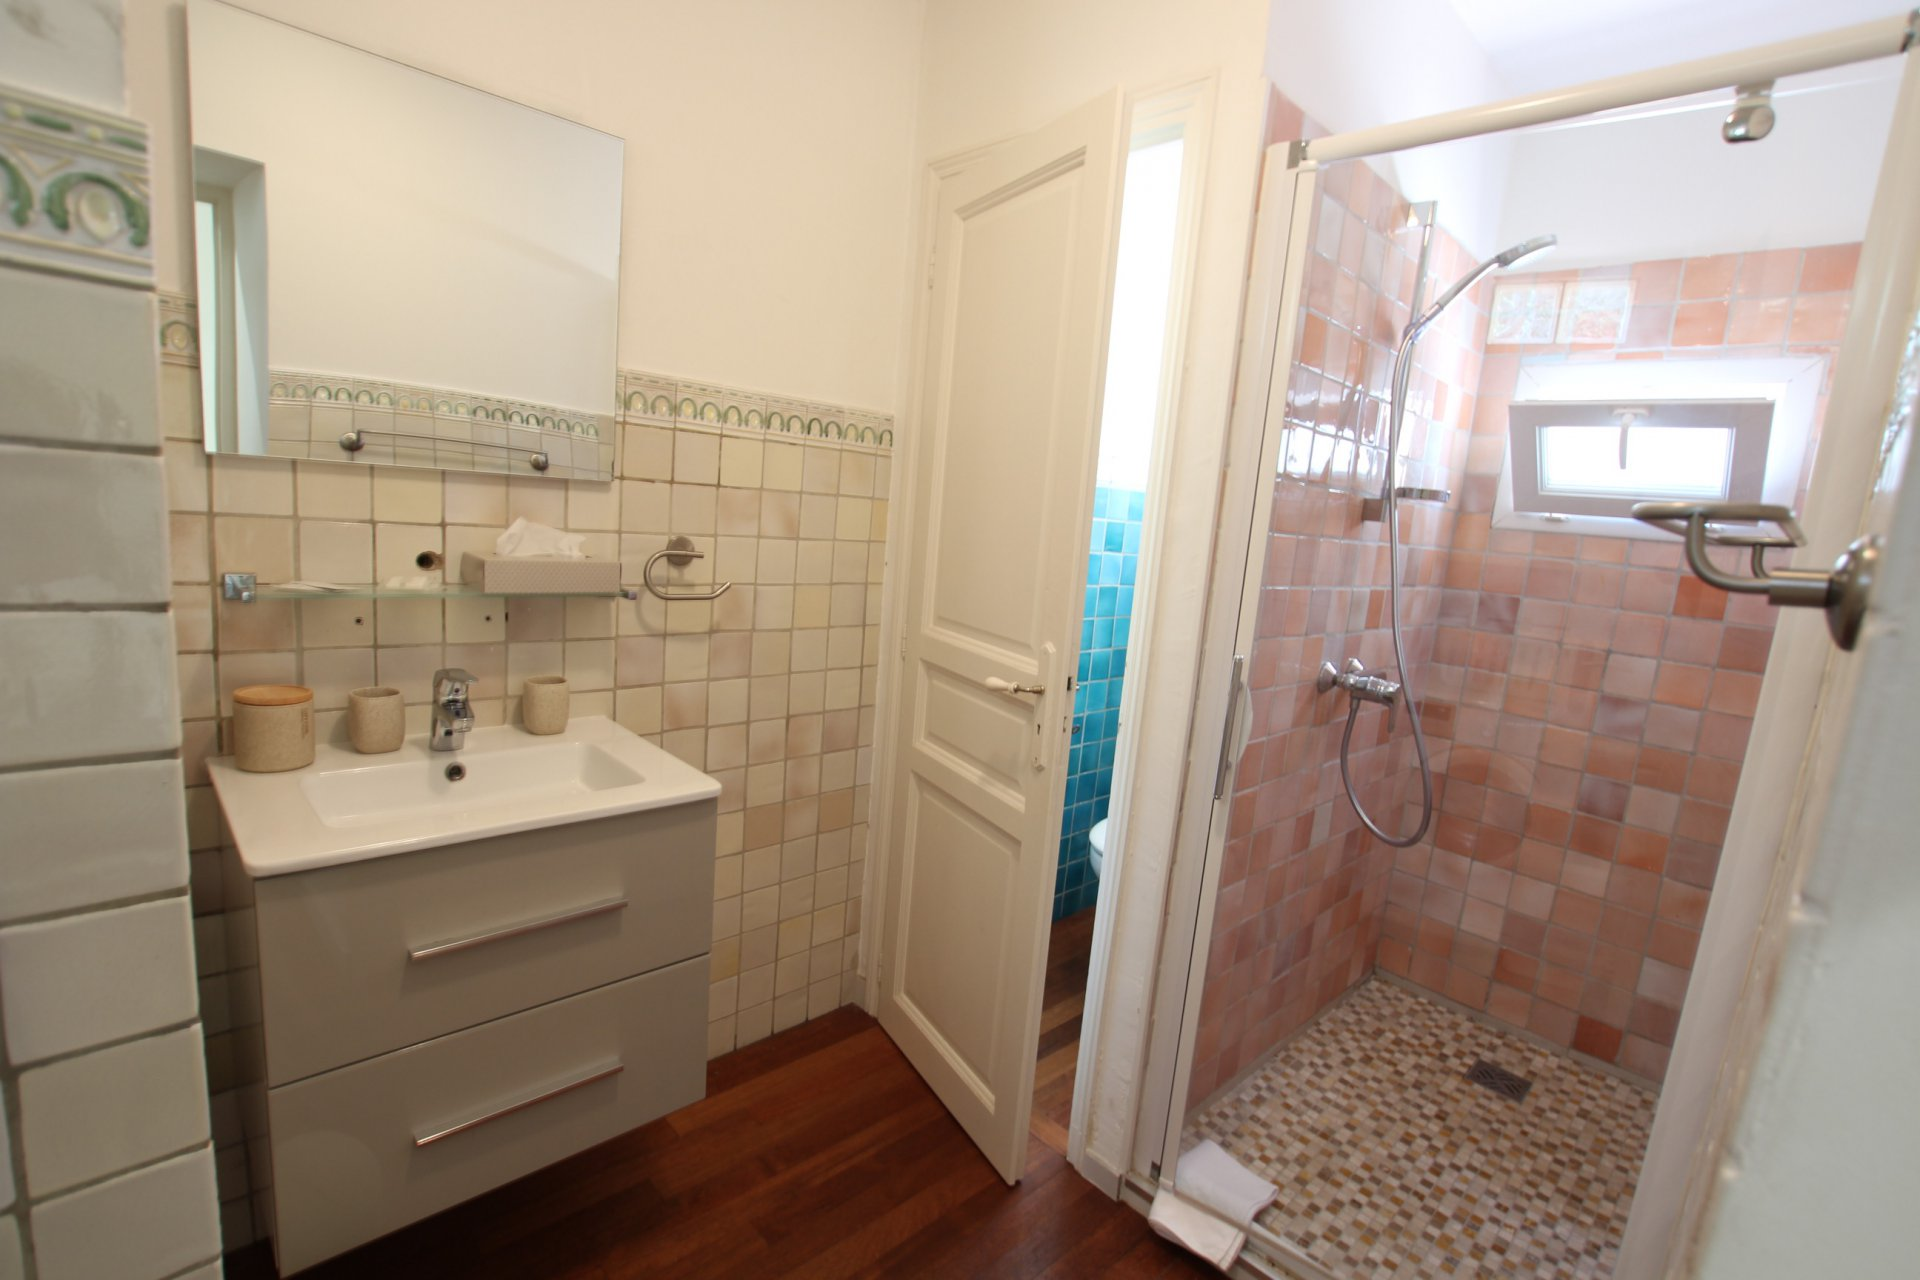 Bathroom, wood floors